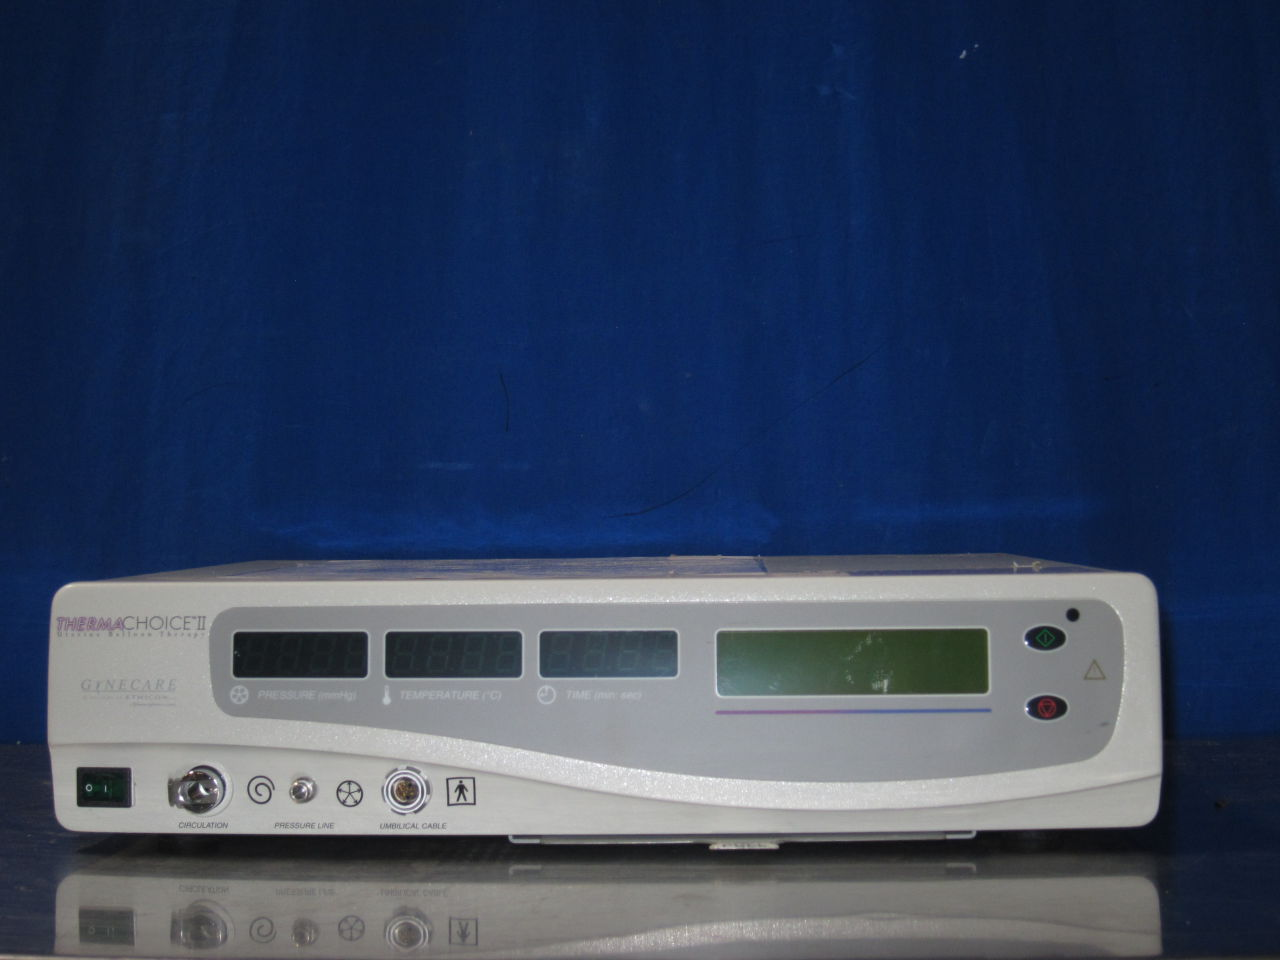 GYNECARE Thermachoice II Balloon Pump